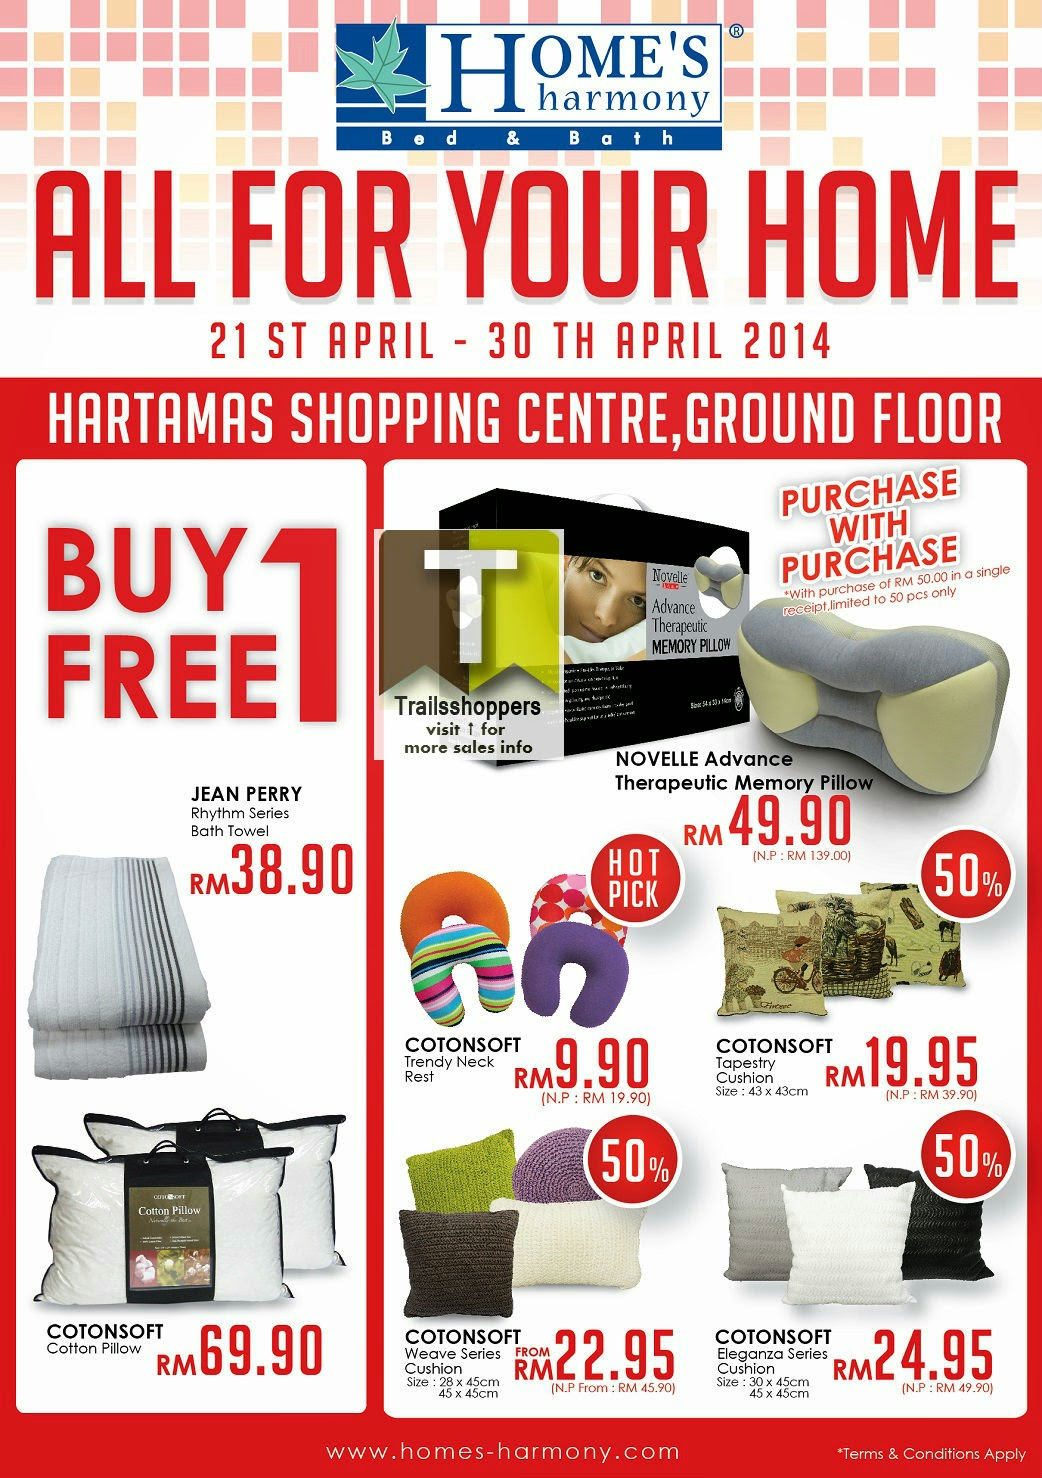 Home's Harmony Fair @ Hartamas Shopping Centre